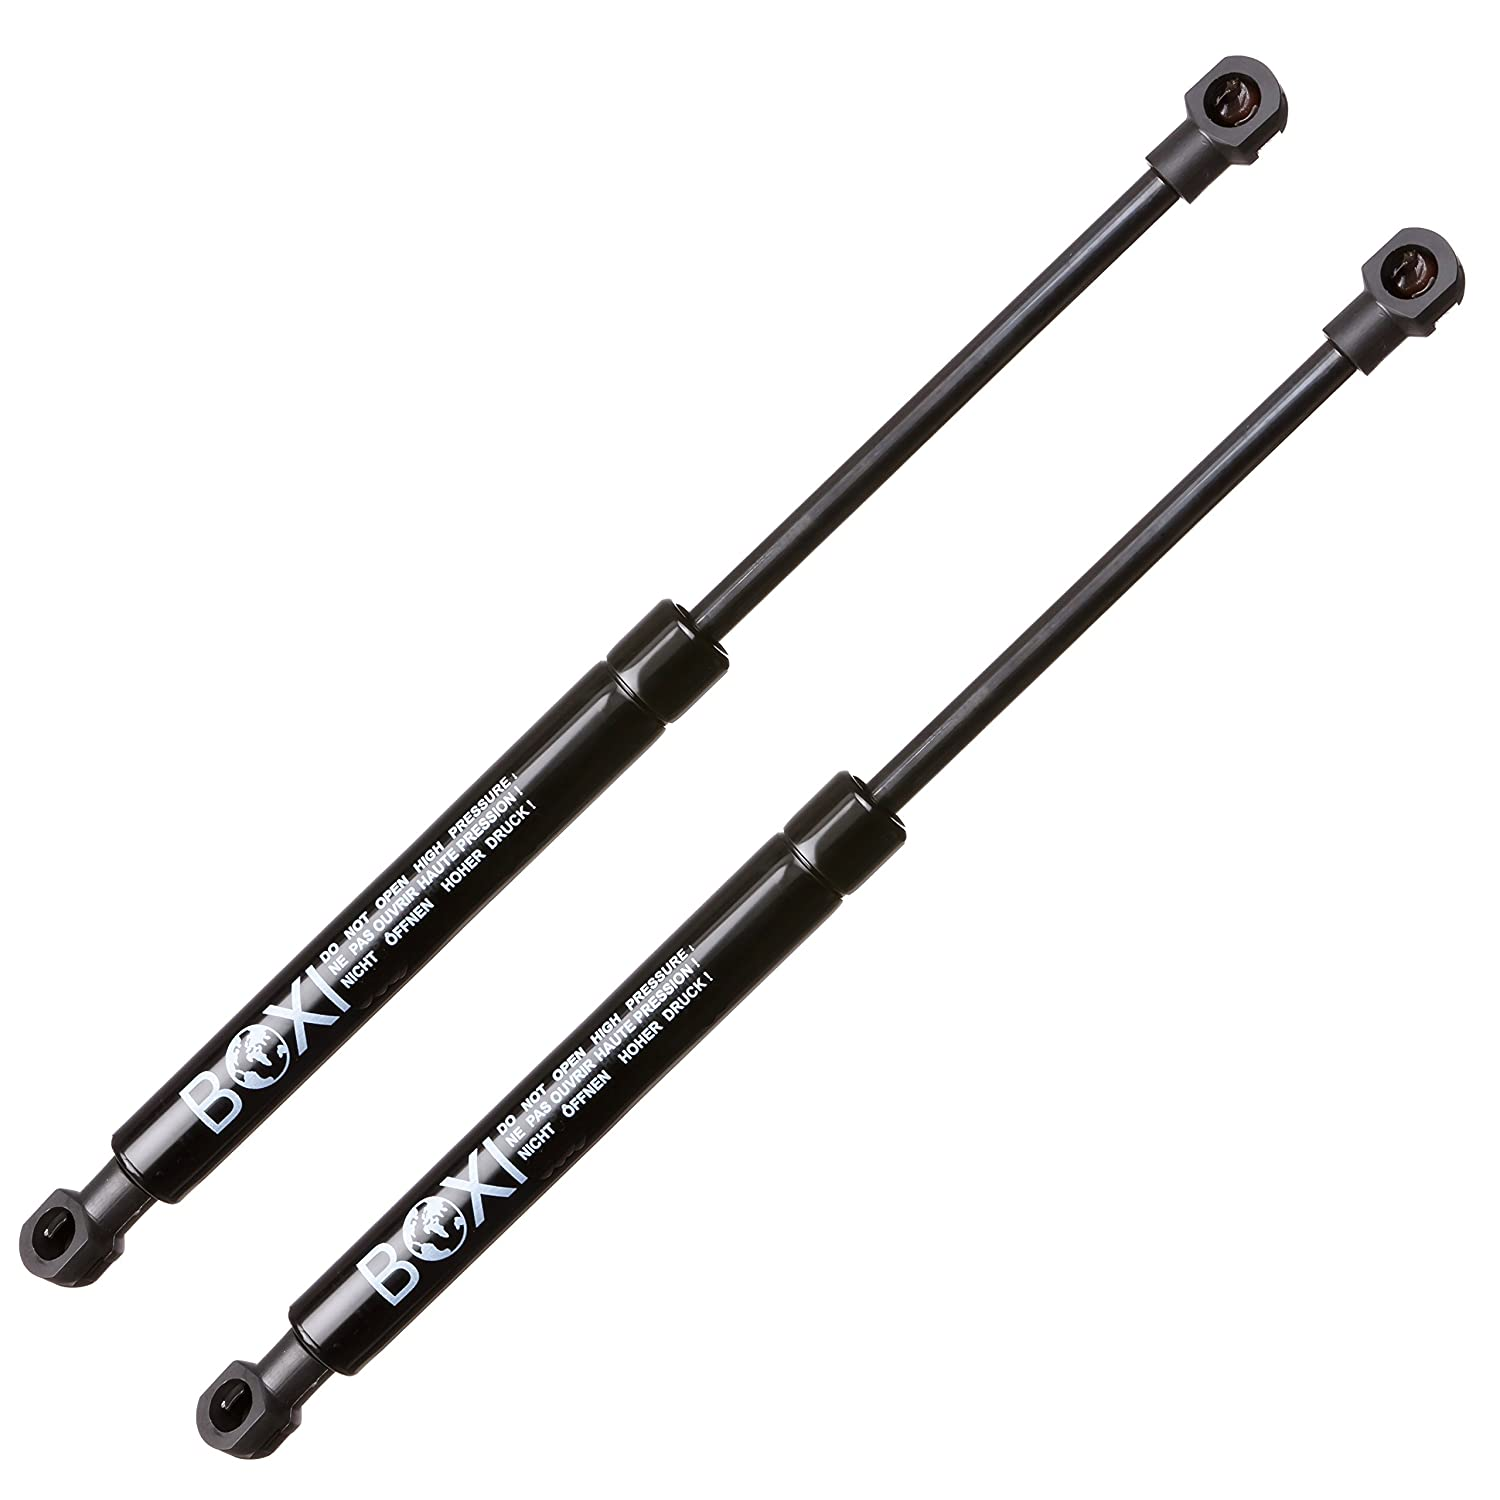 BOXI Trunk Lift Supports Struts Shocks Springs Dampers For Infiniti M30 1991-1992 Trunk 4374 2 Qty